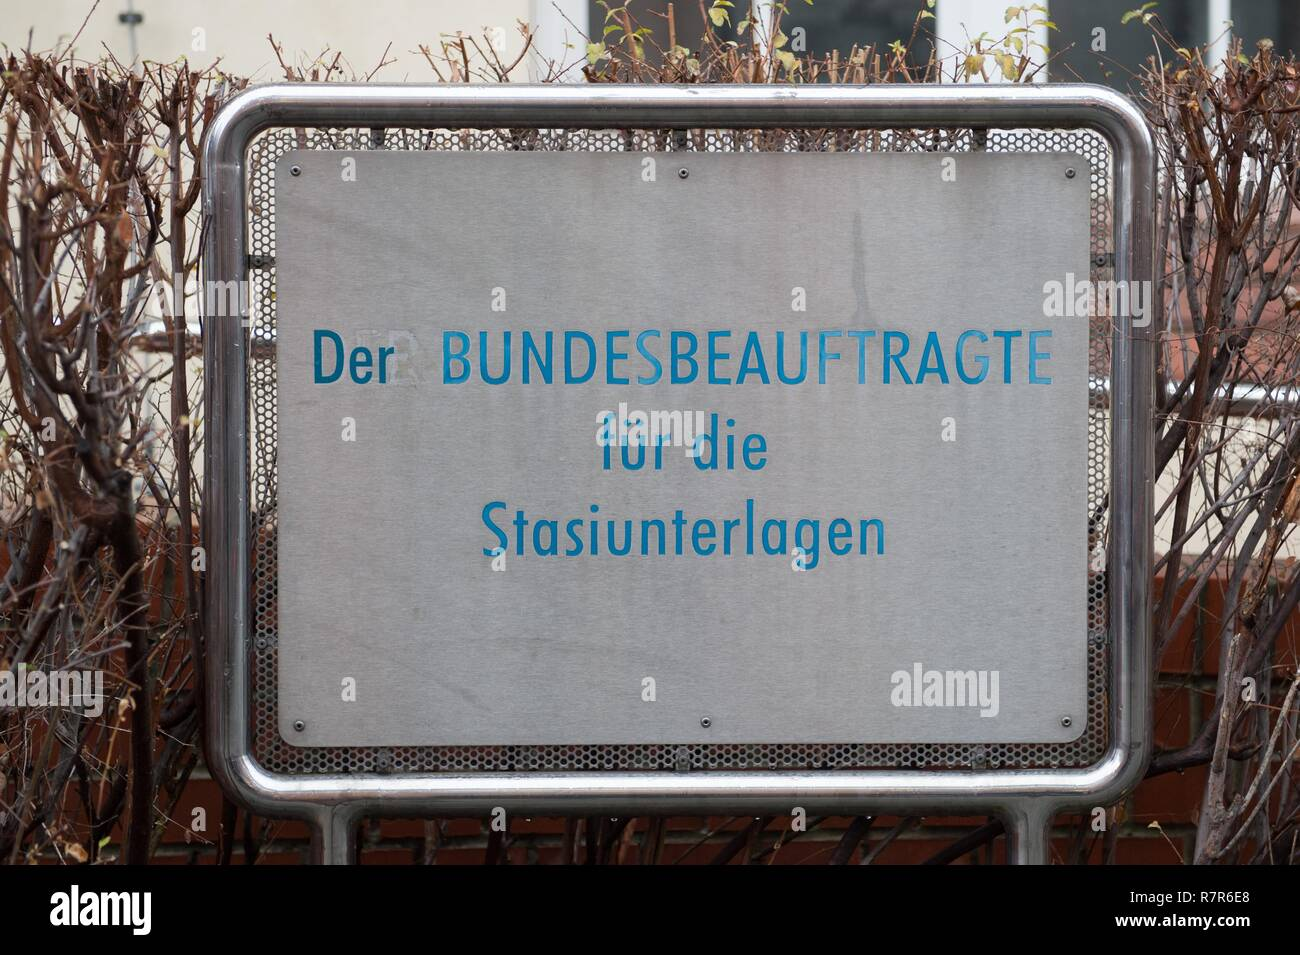 Dresden, Germany. 11th Dec, 2018. A sign with the inscription 'Der Bundesbeaufrtrage für die Stasiunterlagen' stands in front of the authorities building. The Stasi ID card of Russia's president and then KGB officer V. Putin was discovered in the authority. (to dpa 'Stasi identity card of Putin found in Dresden' from 11.12.2018) Credit: Sebastian Kahnert/dpa-Zentralbild/dpa/Alamy Live News - Stock Image